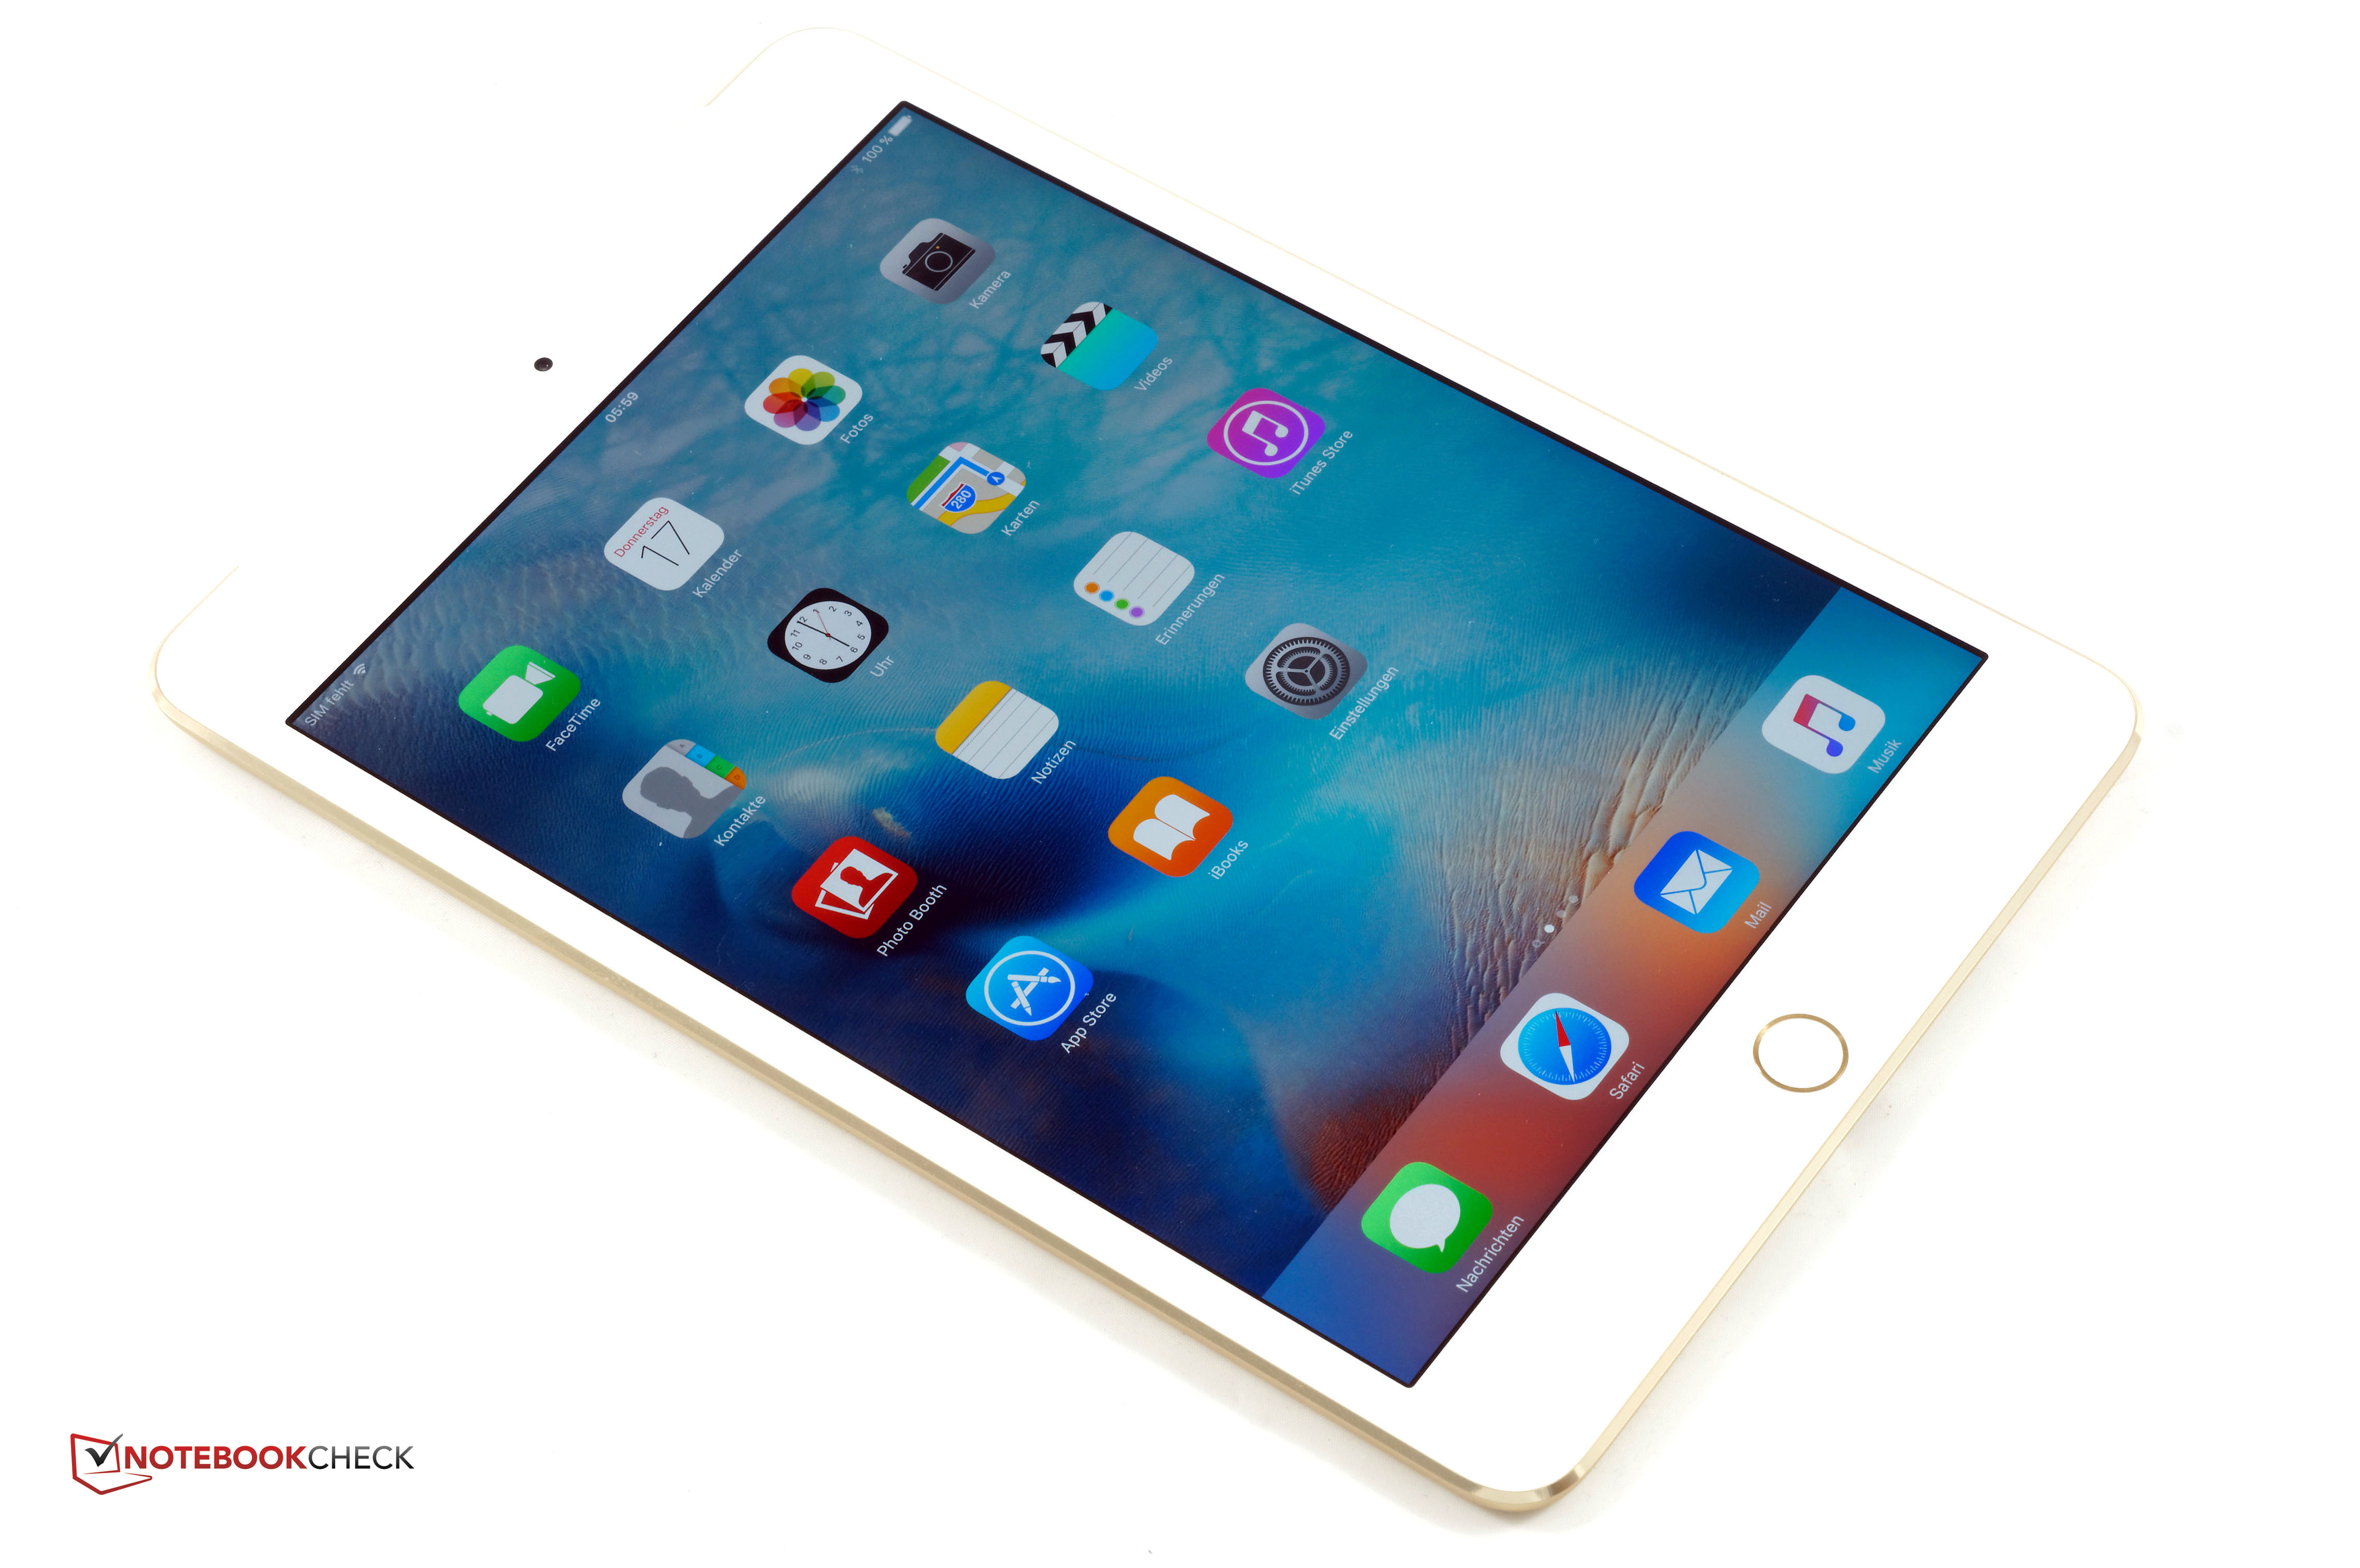 3c4cb80068703 Apple iPad Mini 4 Tablet Review - NotebookCheck.net Reviews